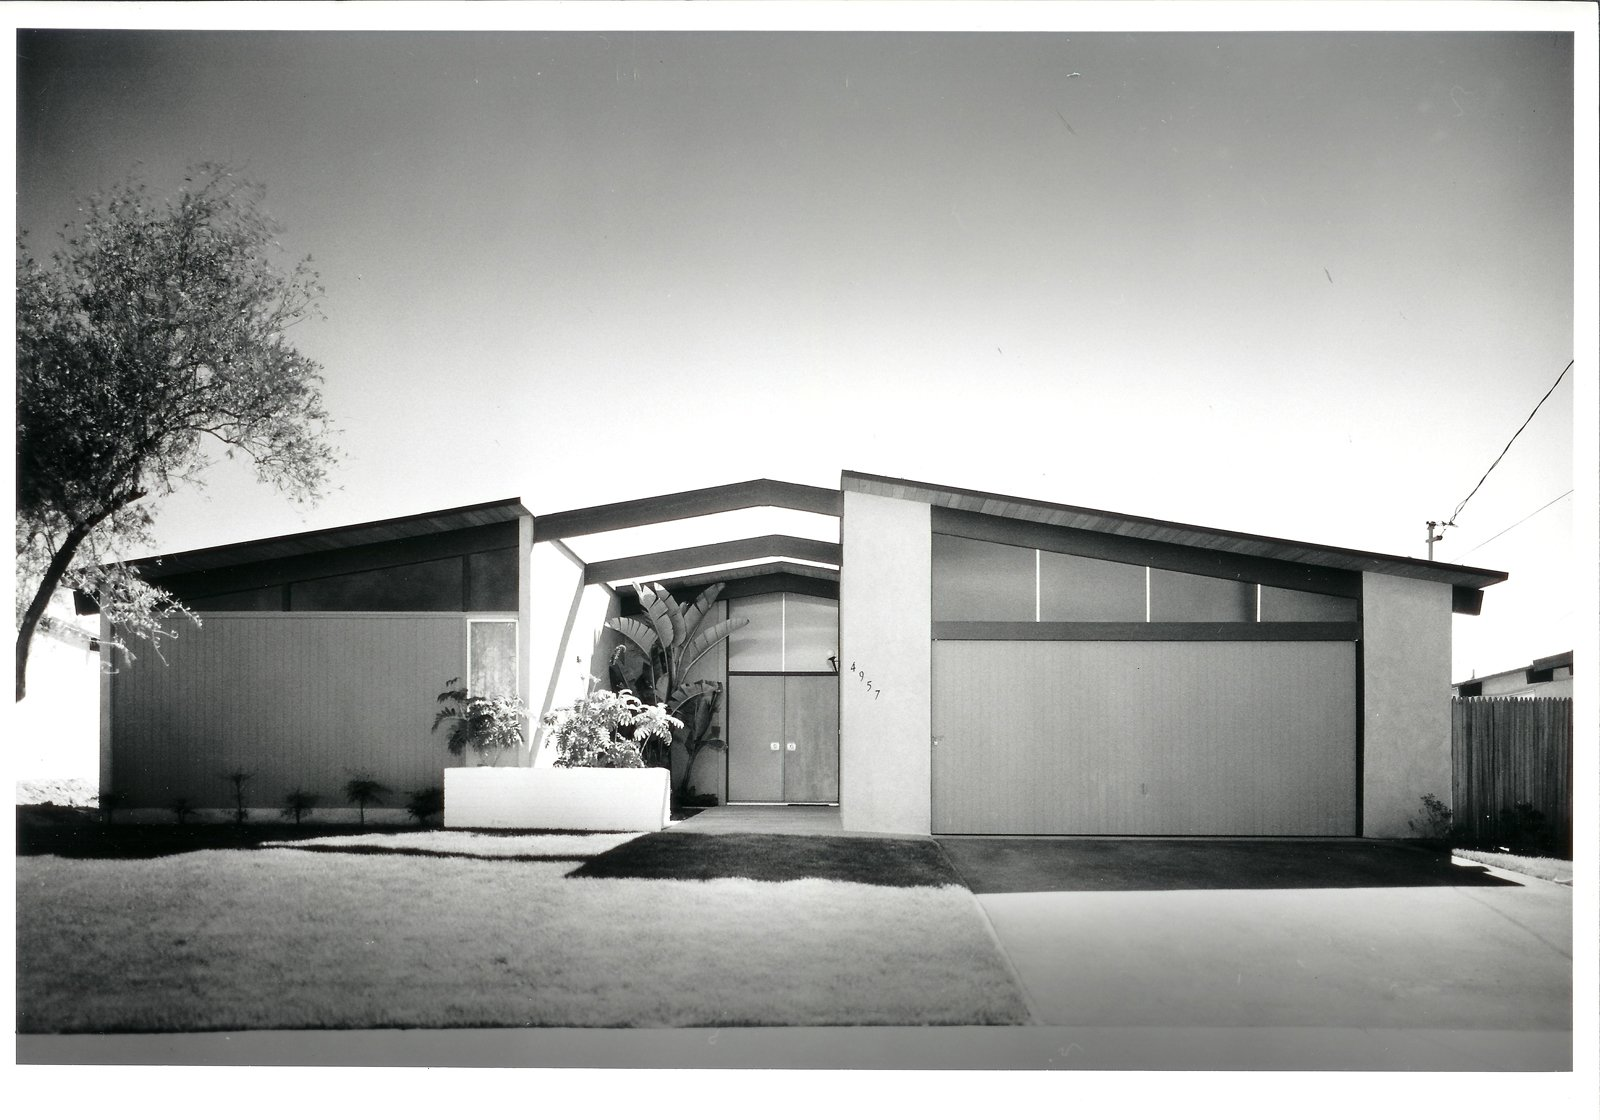 La Jolla Pacifica by William Krisel.  Photo 6 of 9 in Iconic California Midcentury-Modern Architect William Krisel Dies at 92 from Q&A with Illustrious California Architect William Krisel